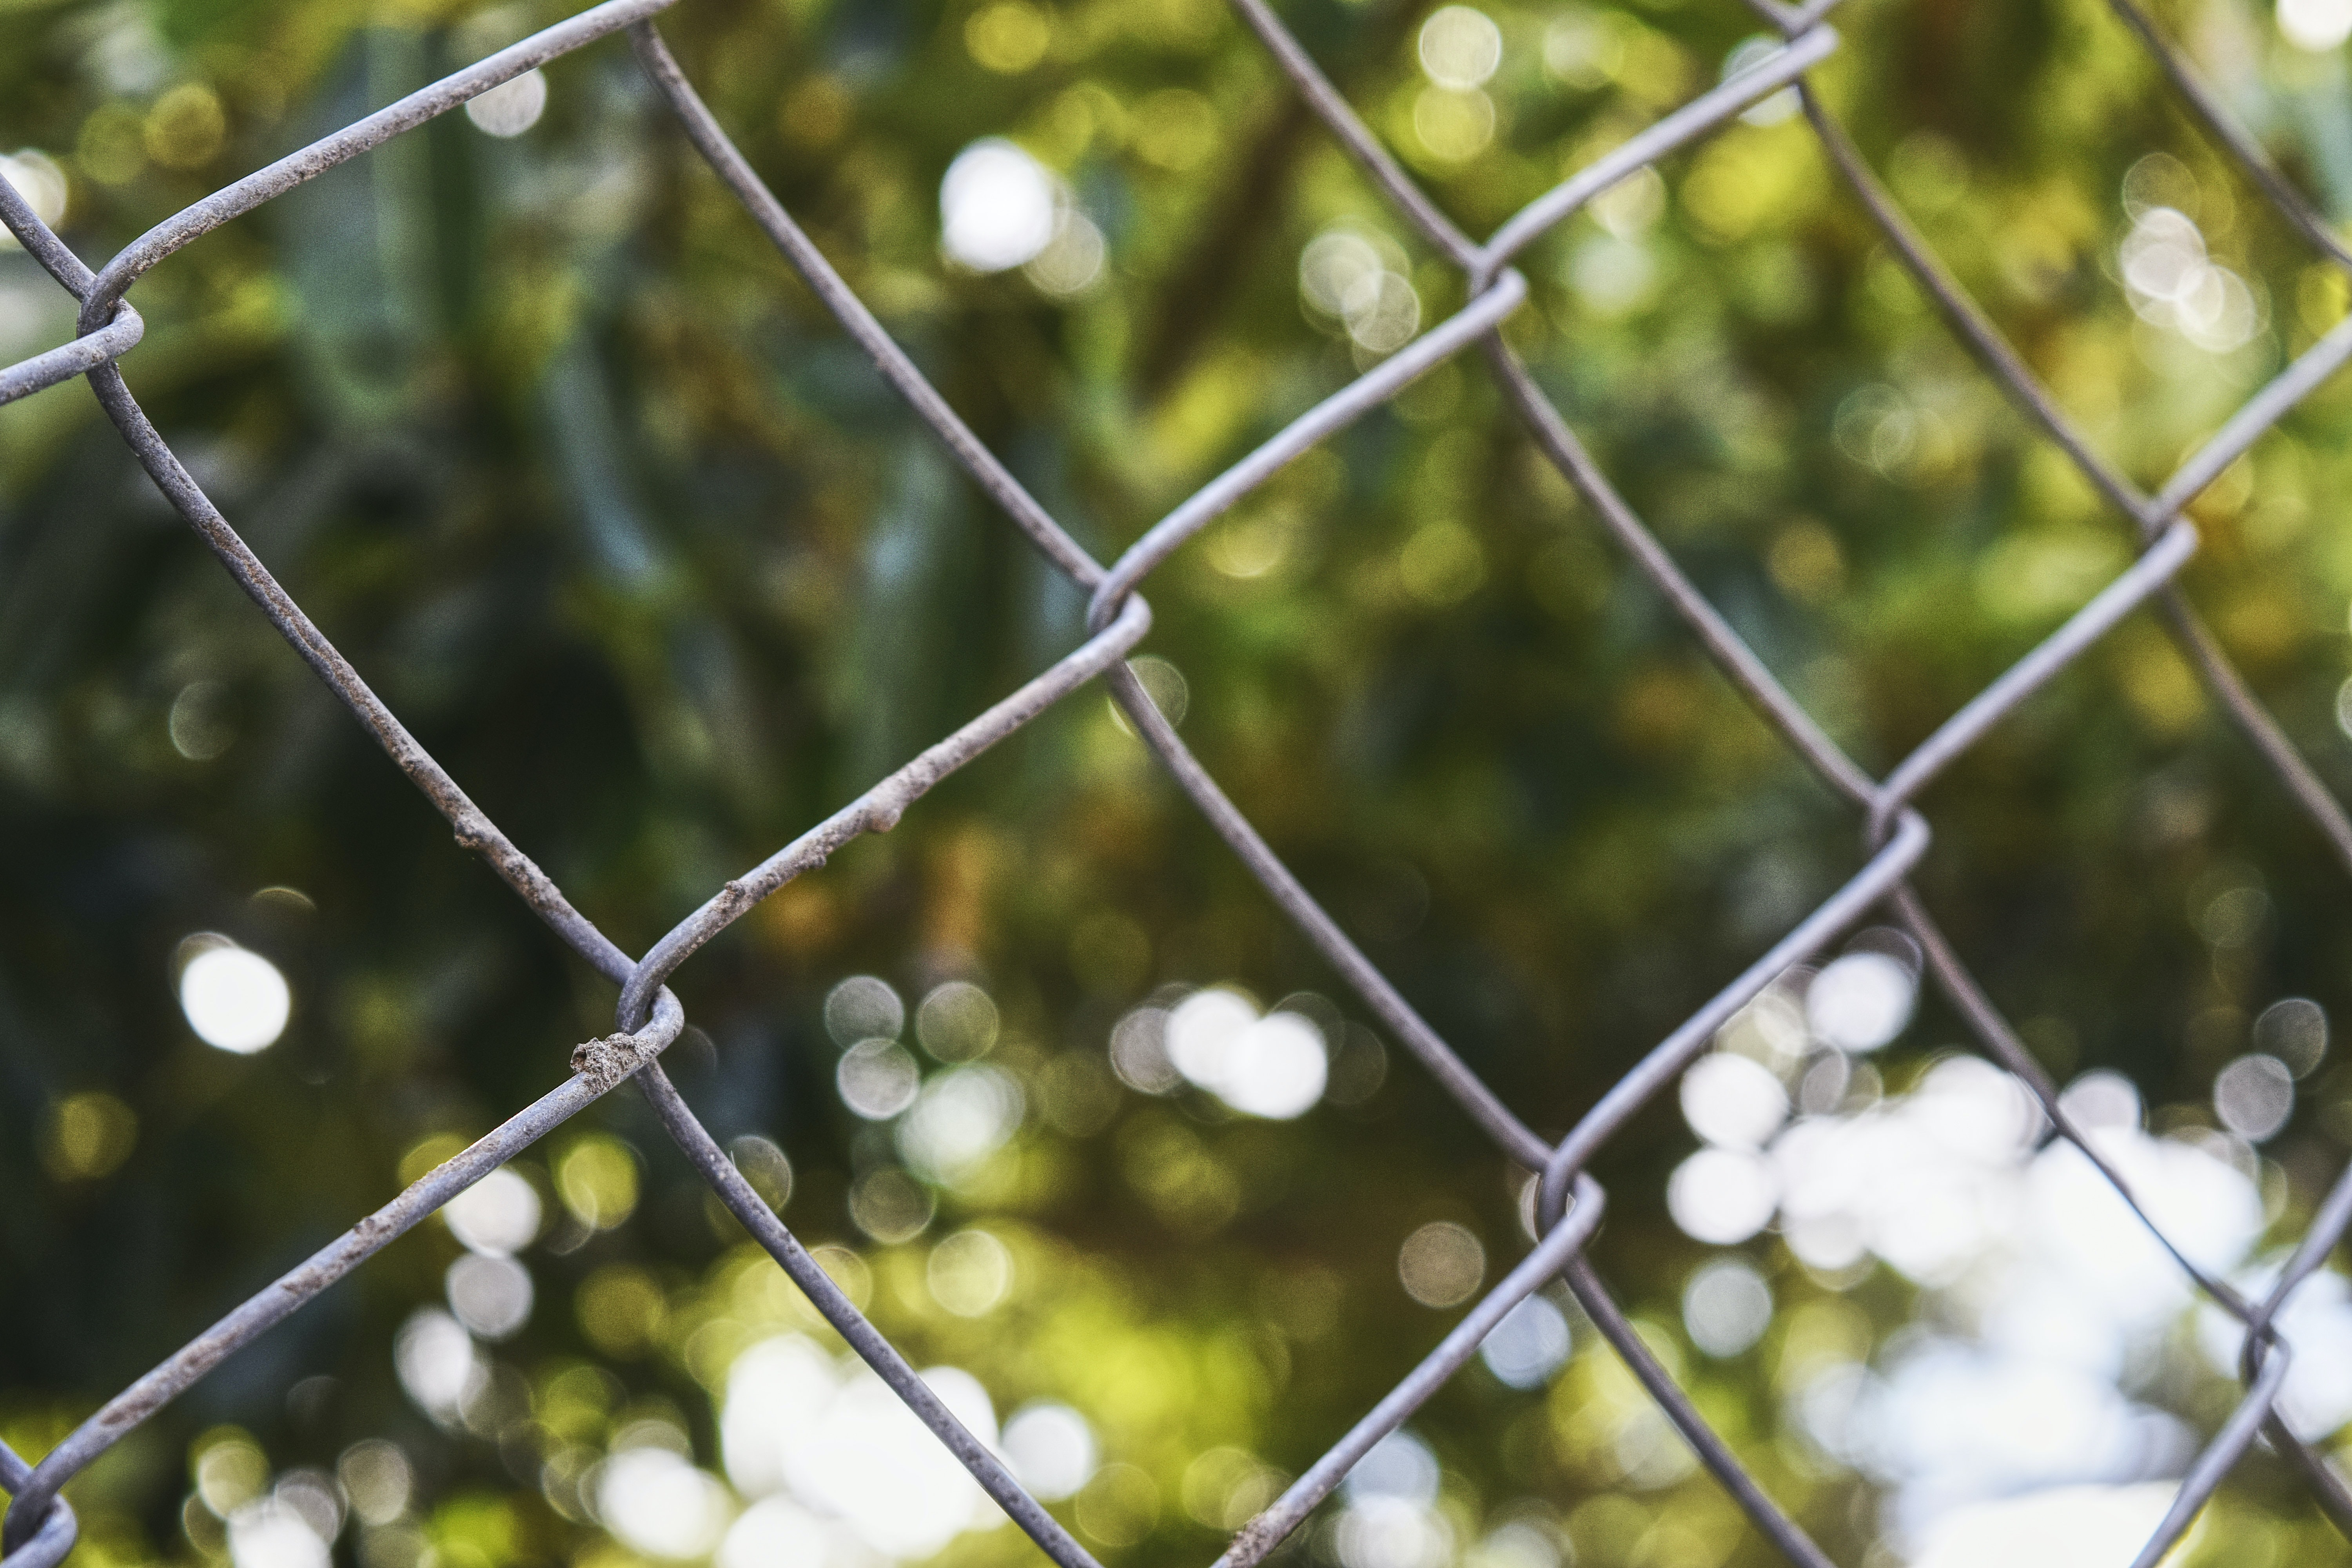 shallow focus photography of cyclone wire